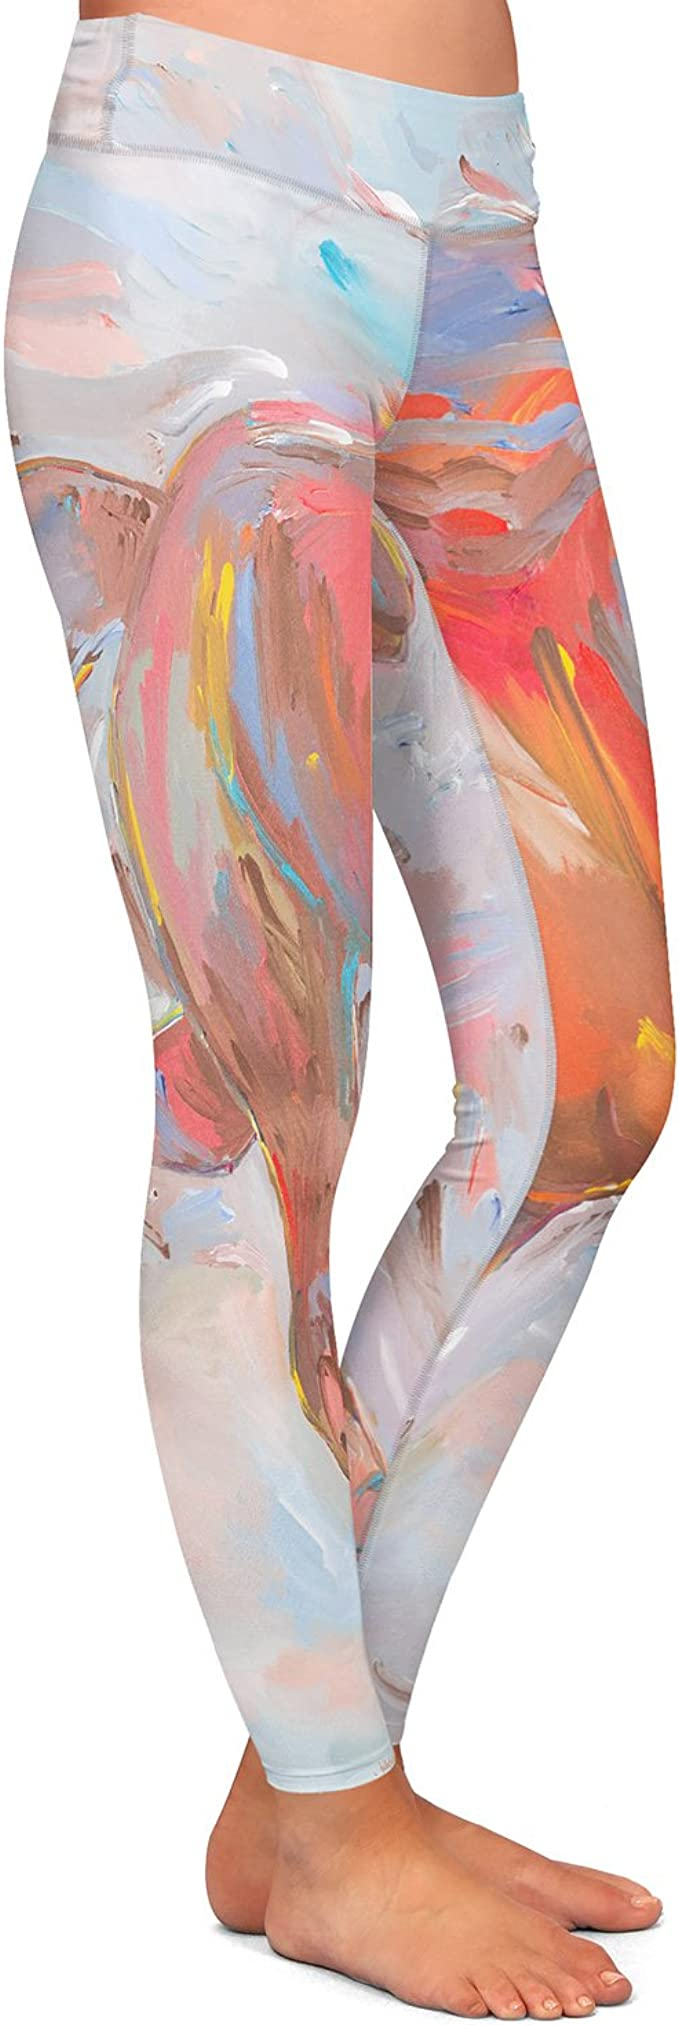 Athletic Yoga Leggings from DiaNoche Designs by Metka Hiti Leafs and Flowers Inside BW